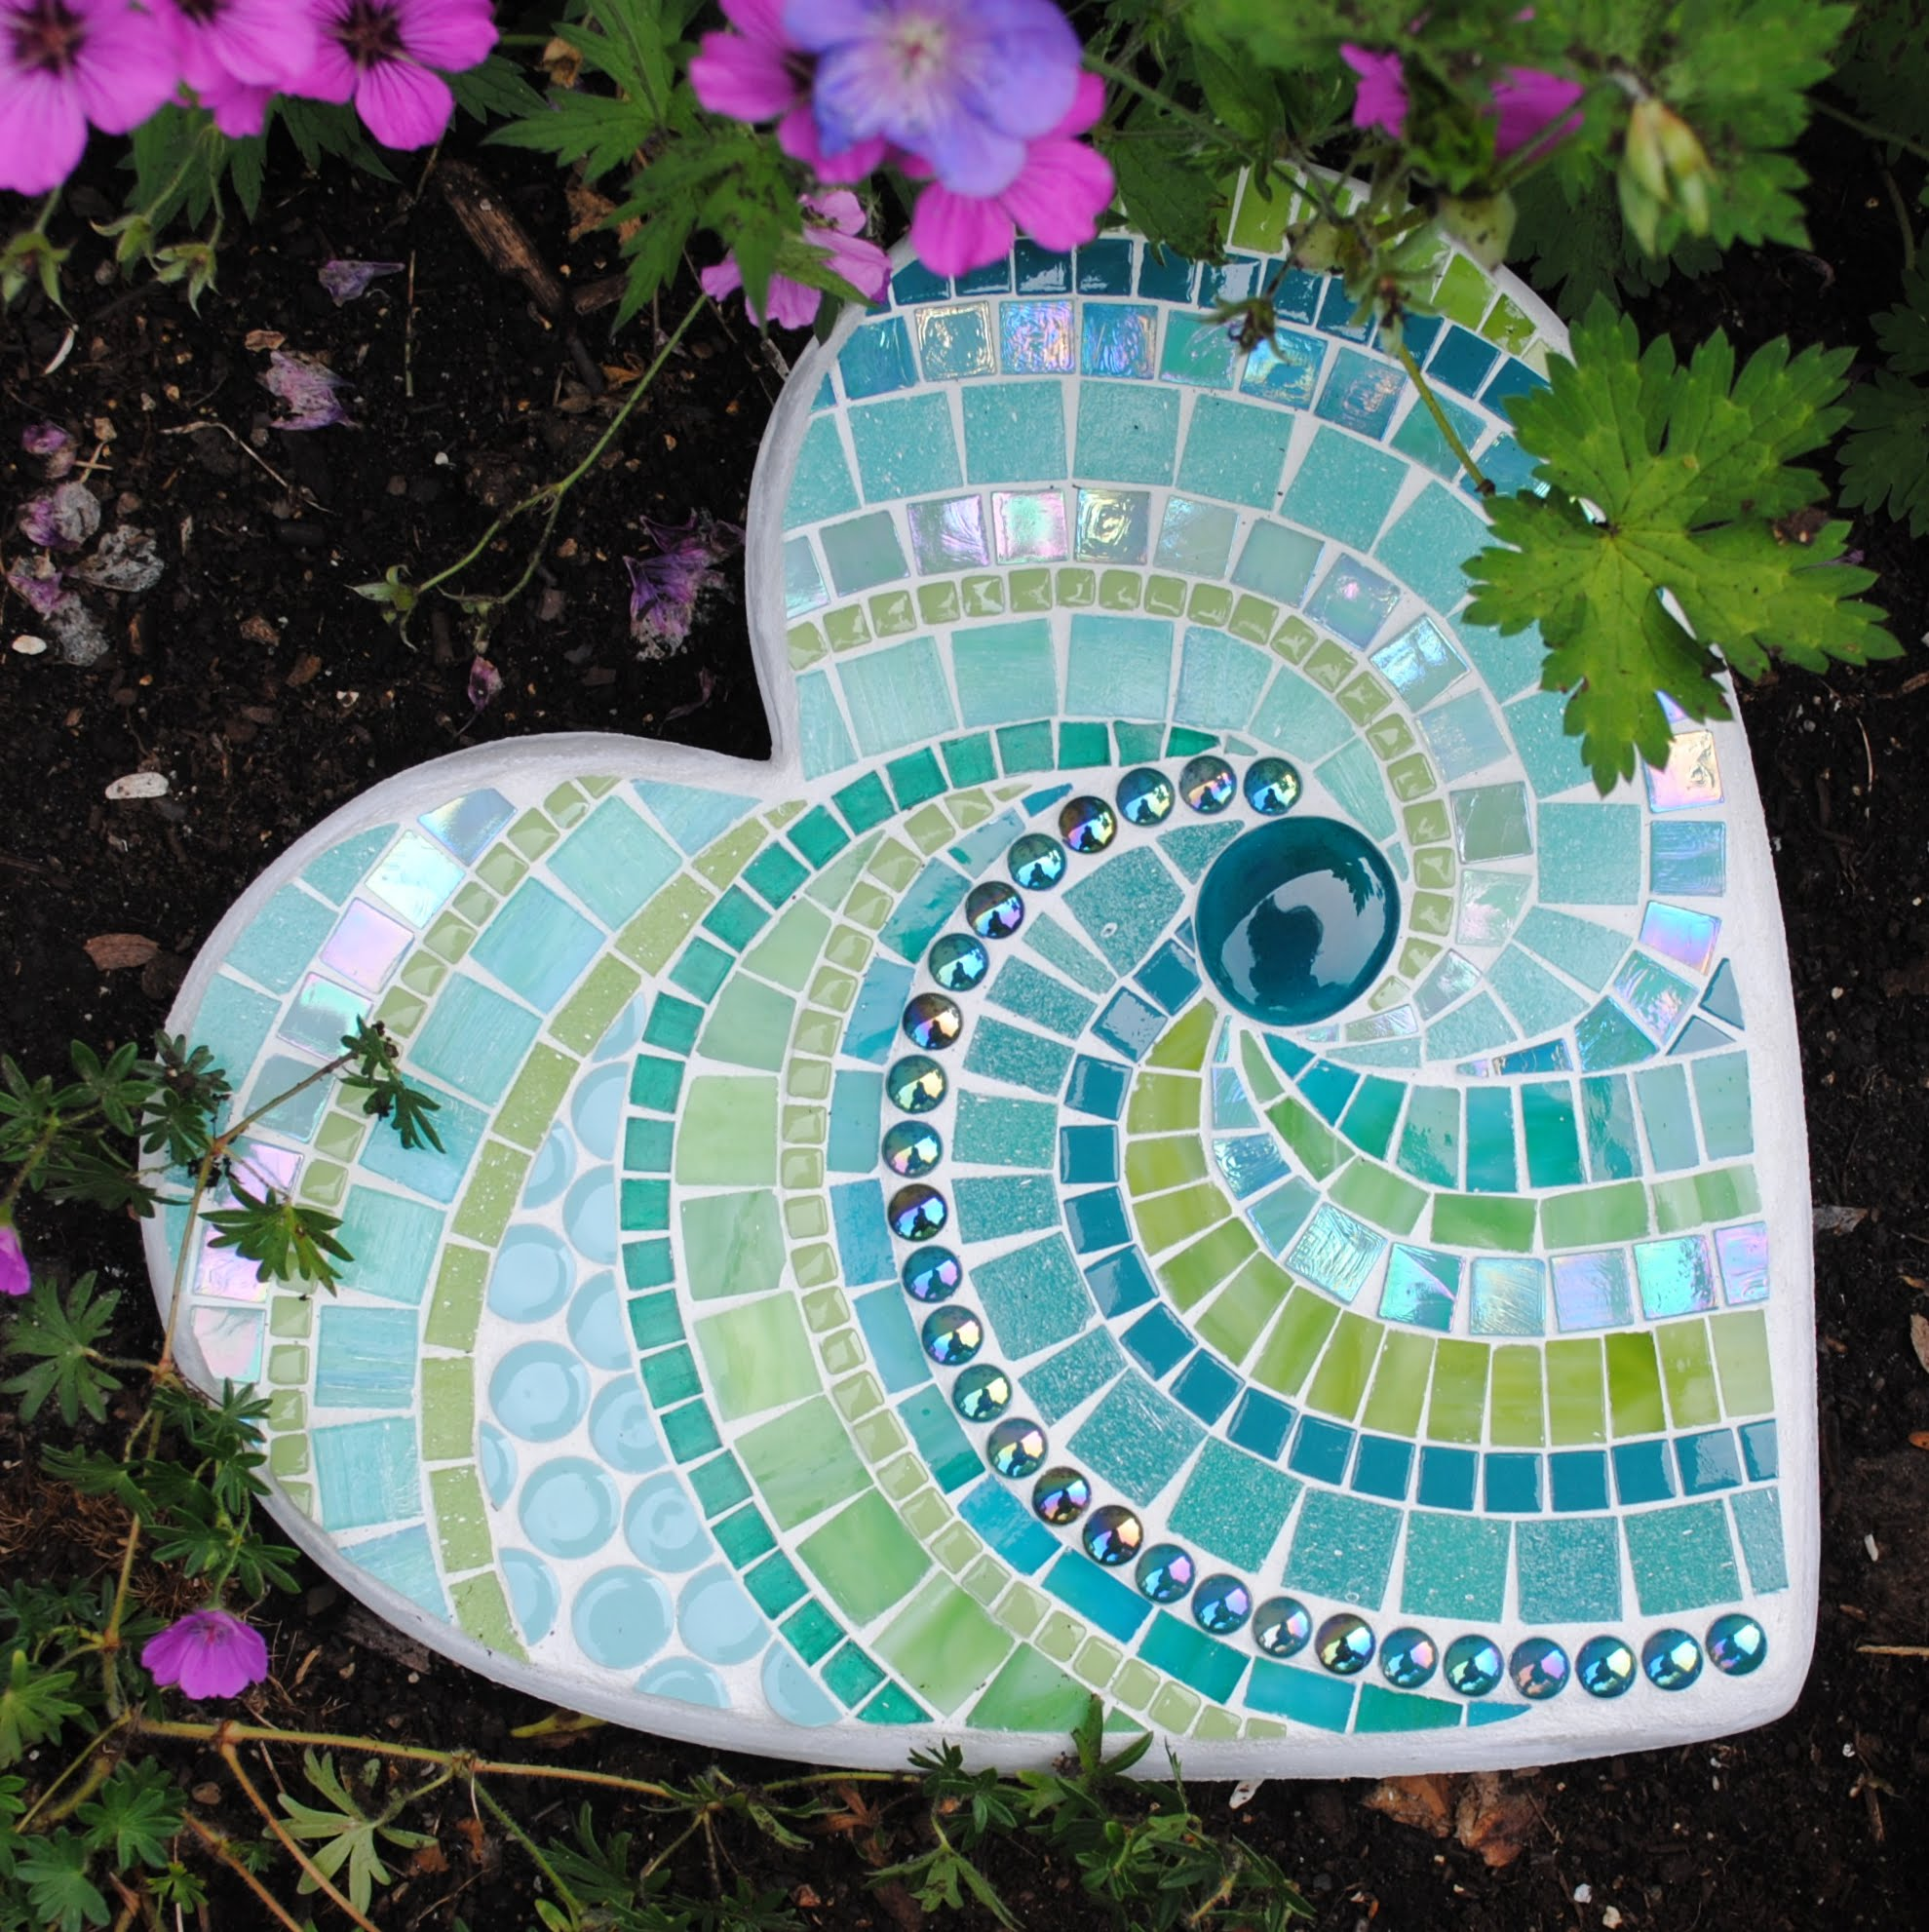 Tropical rainforest large mosaic stepping stone moo5096 for Garden mosaic designs